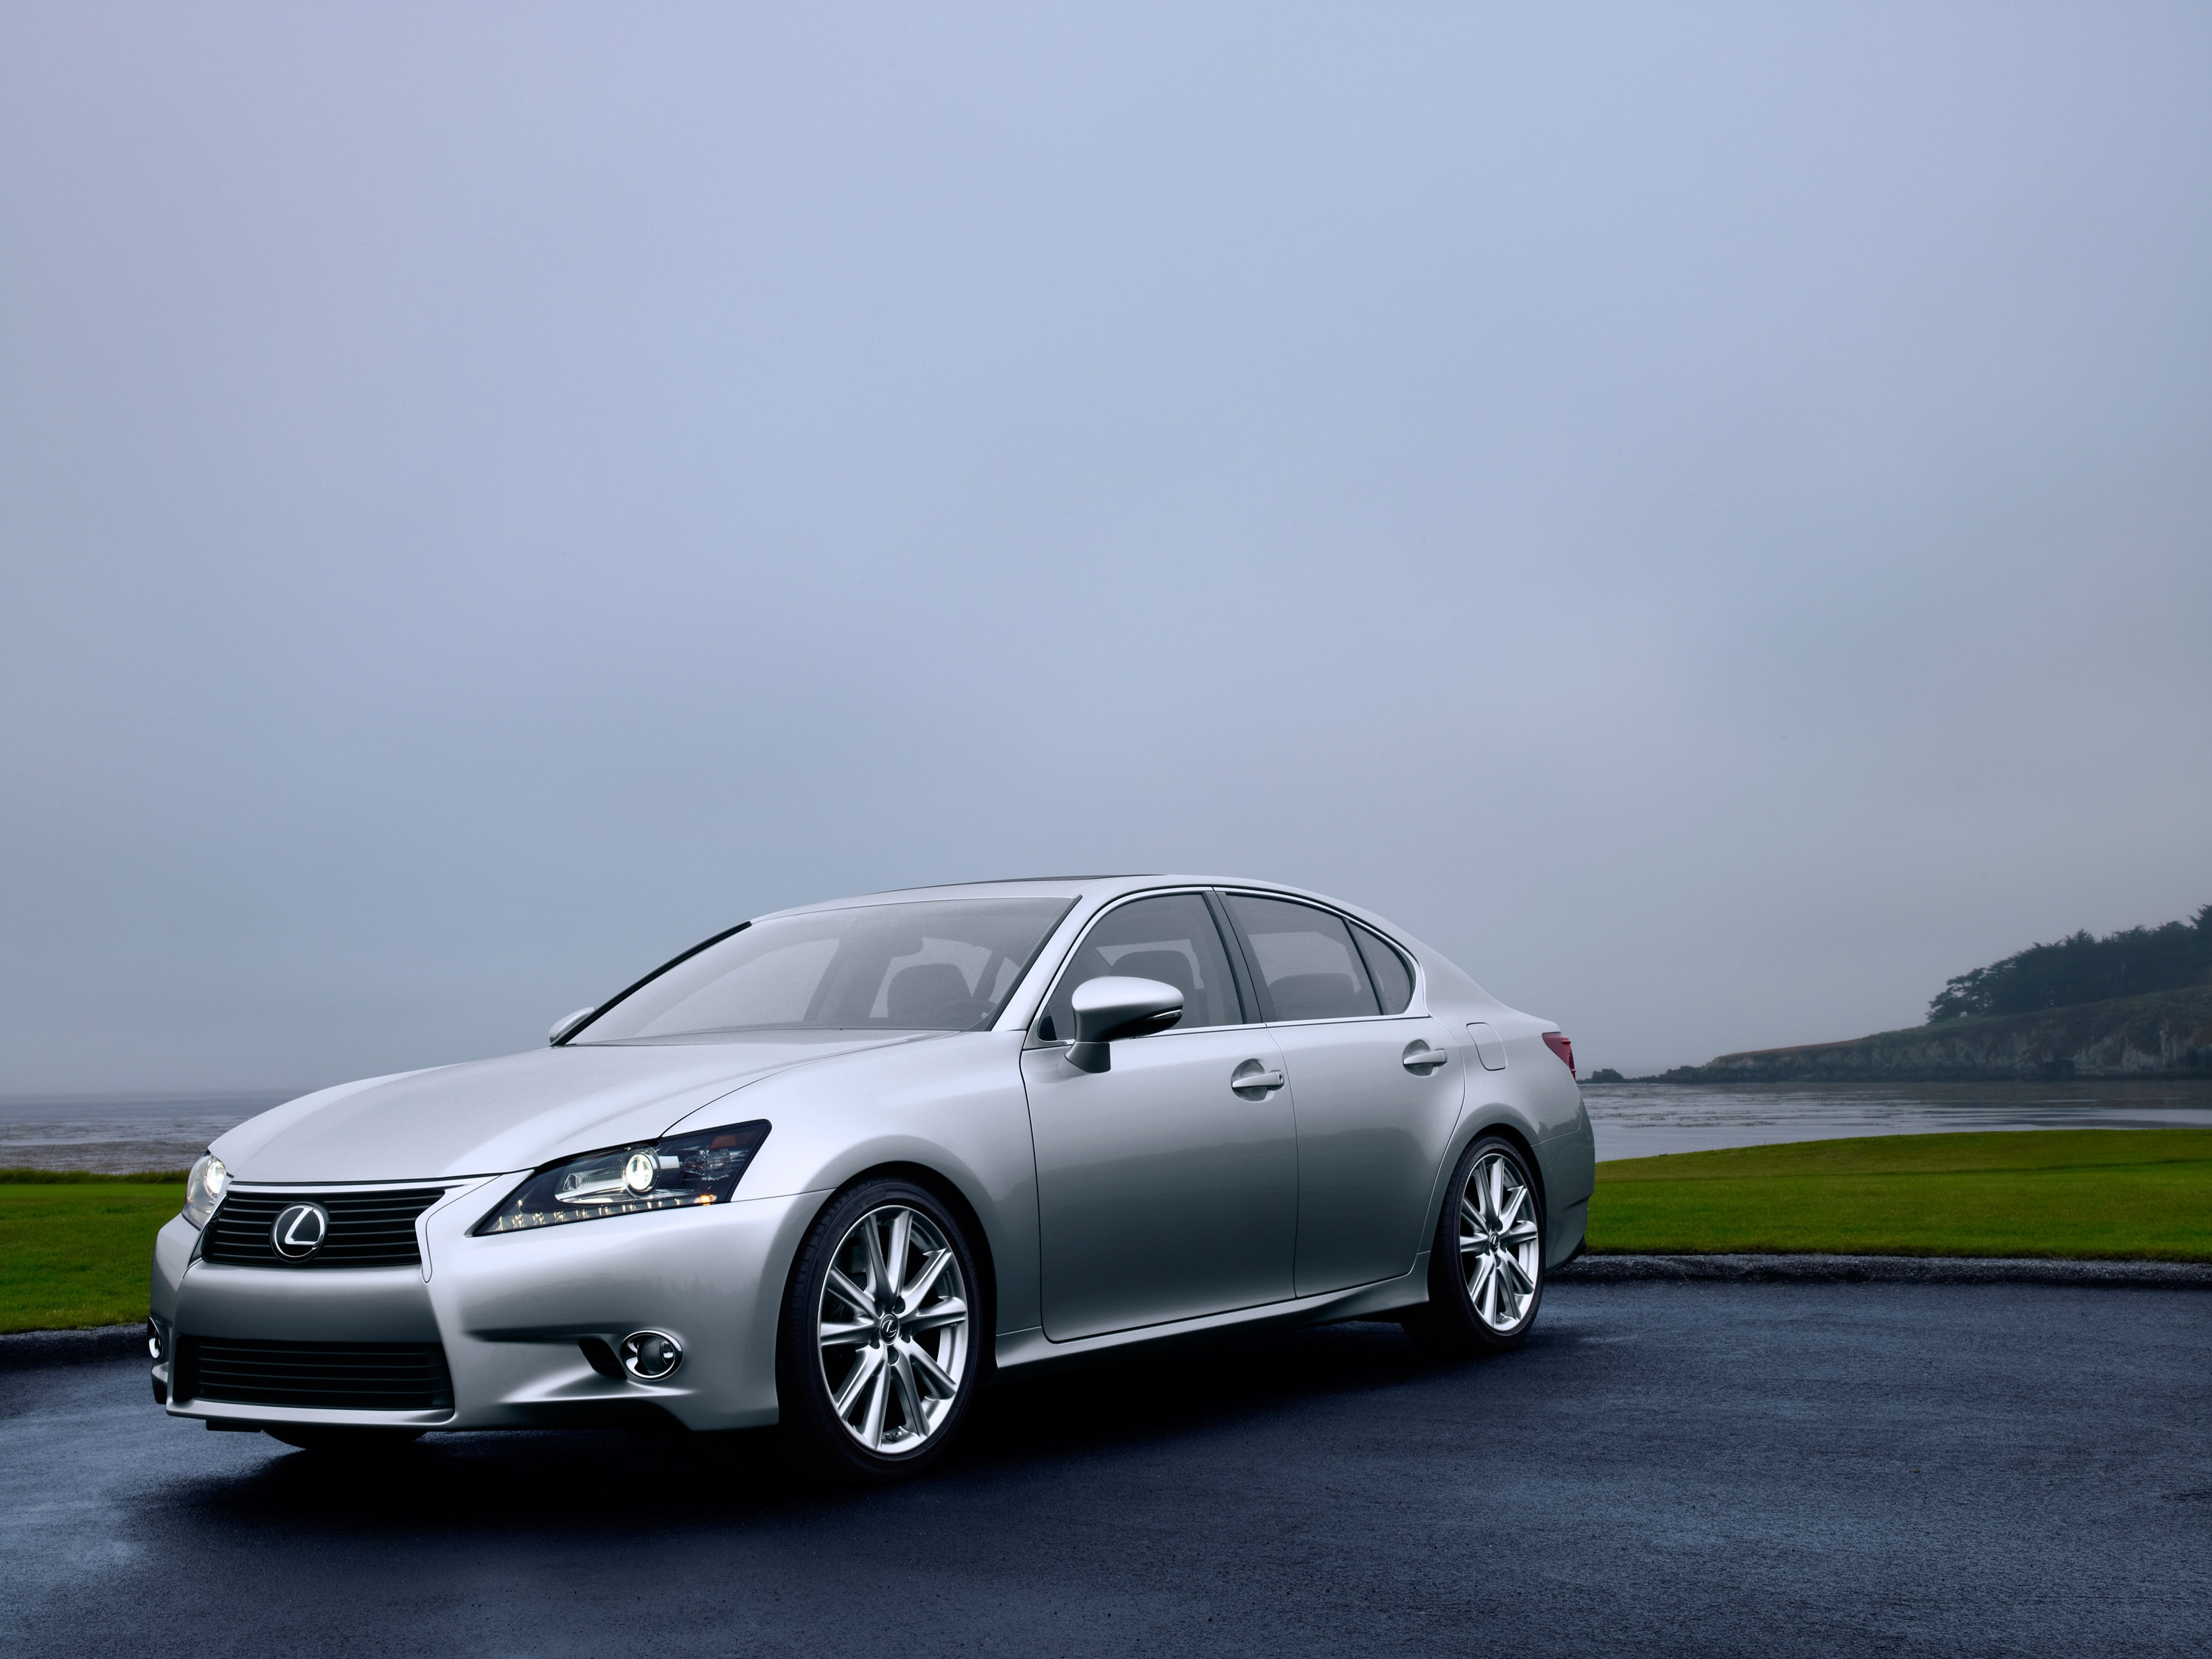 high free lexus wheels best model quality gs asp resolution mad contents